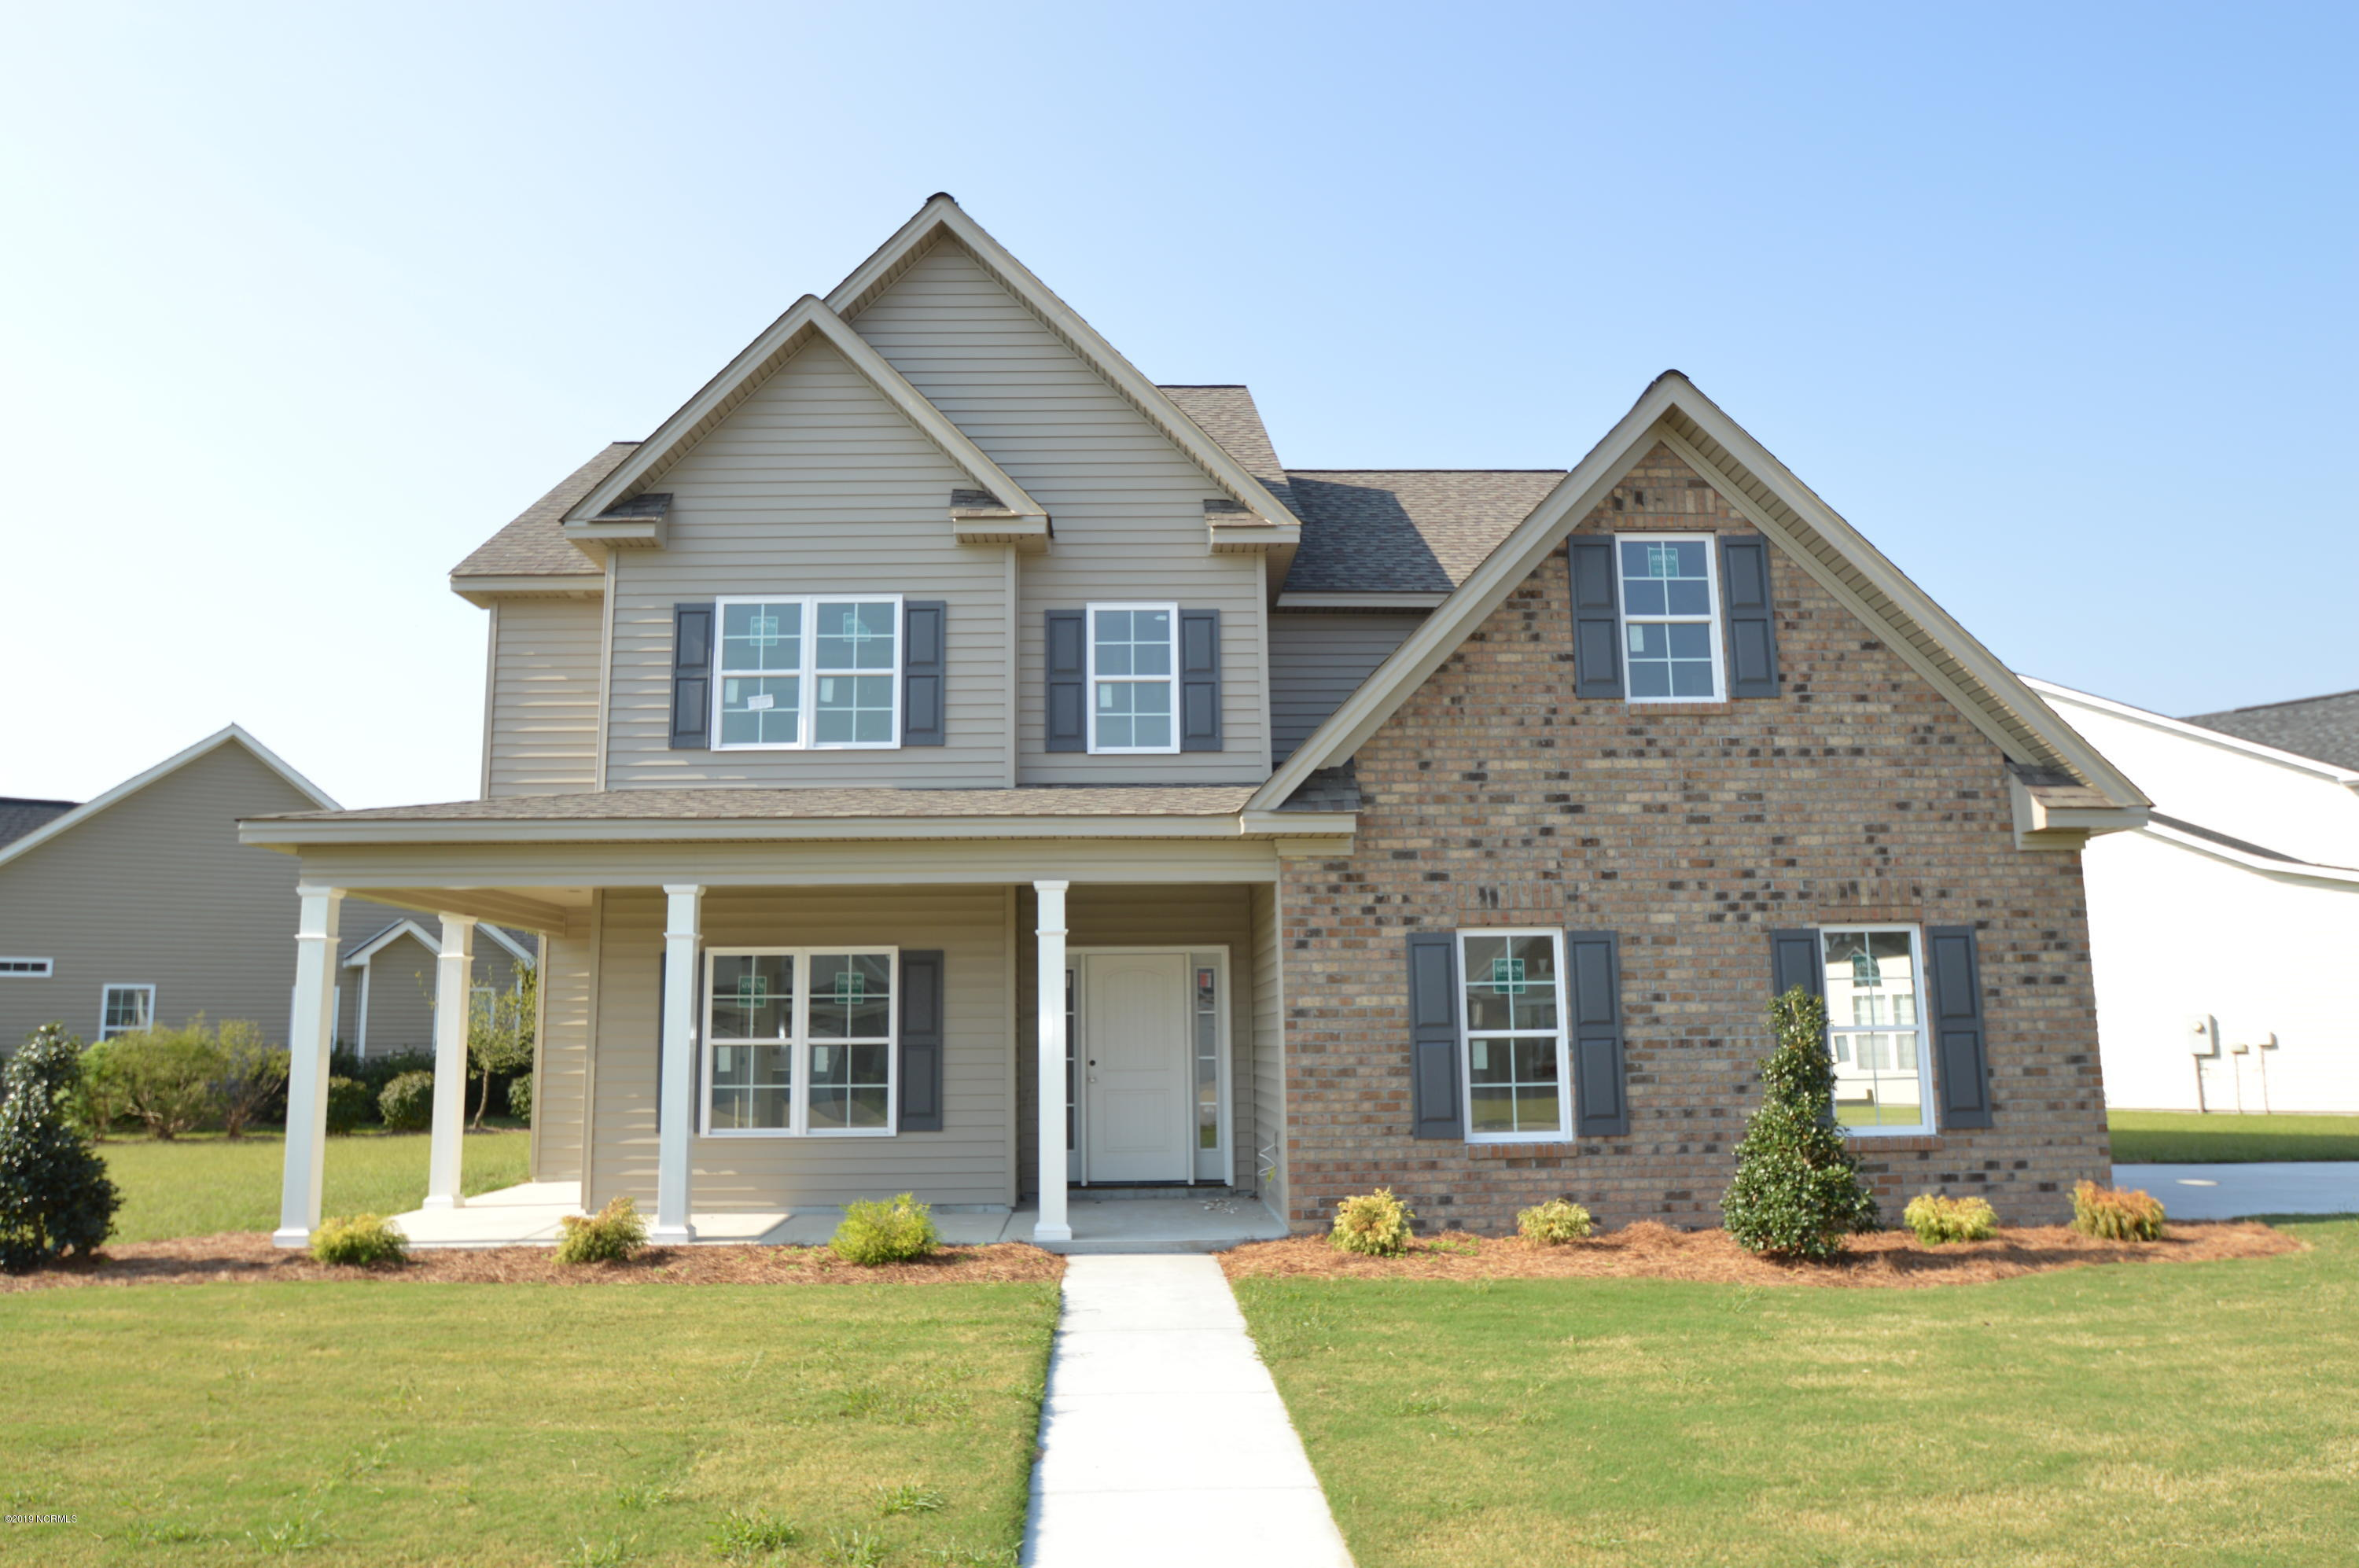 Property for sale at 4117 Killarney Drive, Winterville,  North Carolina 28590